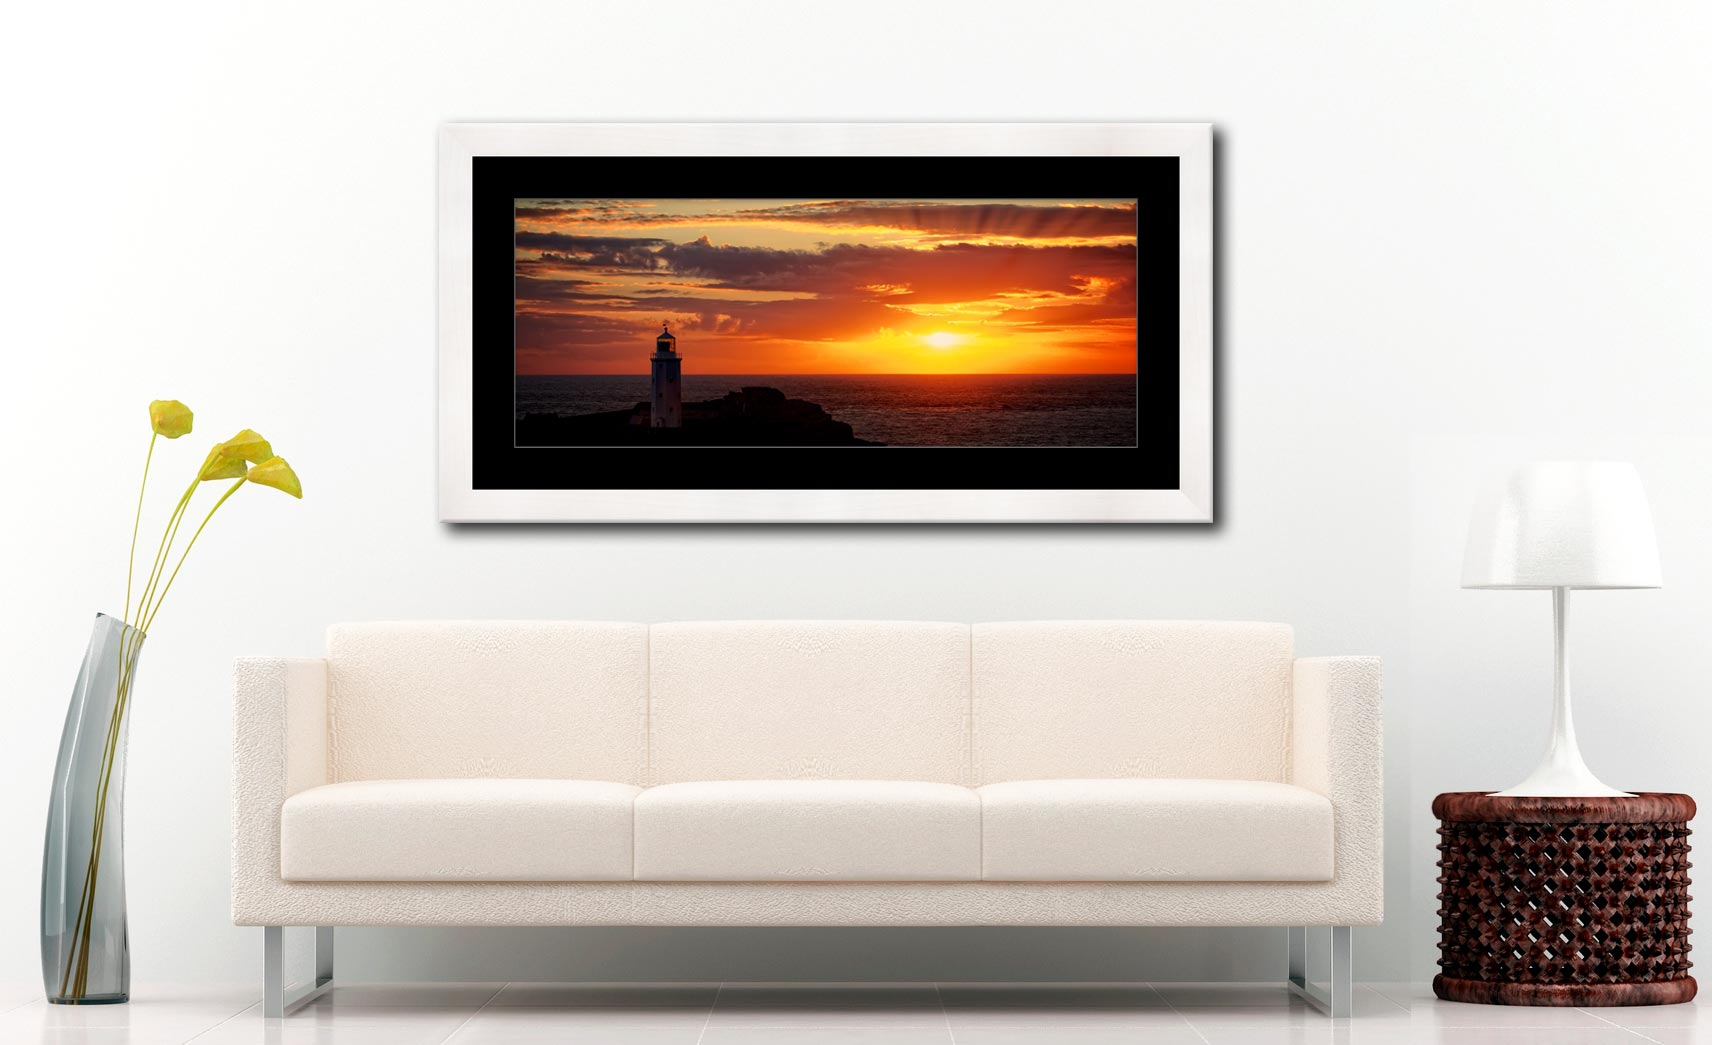 Sun Rays Over Godrevy Lighthouse - Framed Print with Mount on Wall